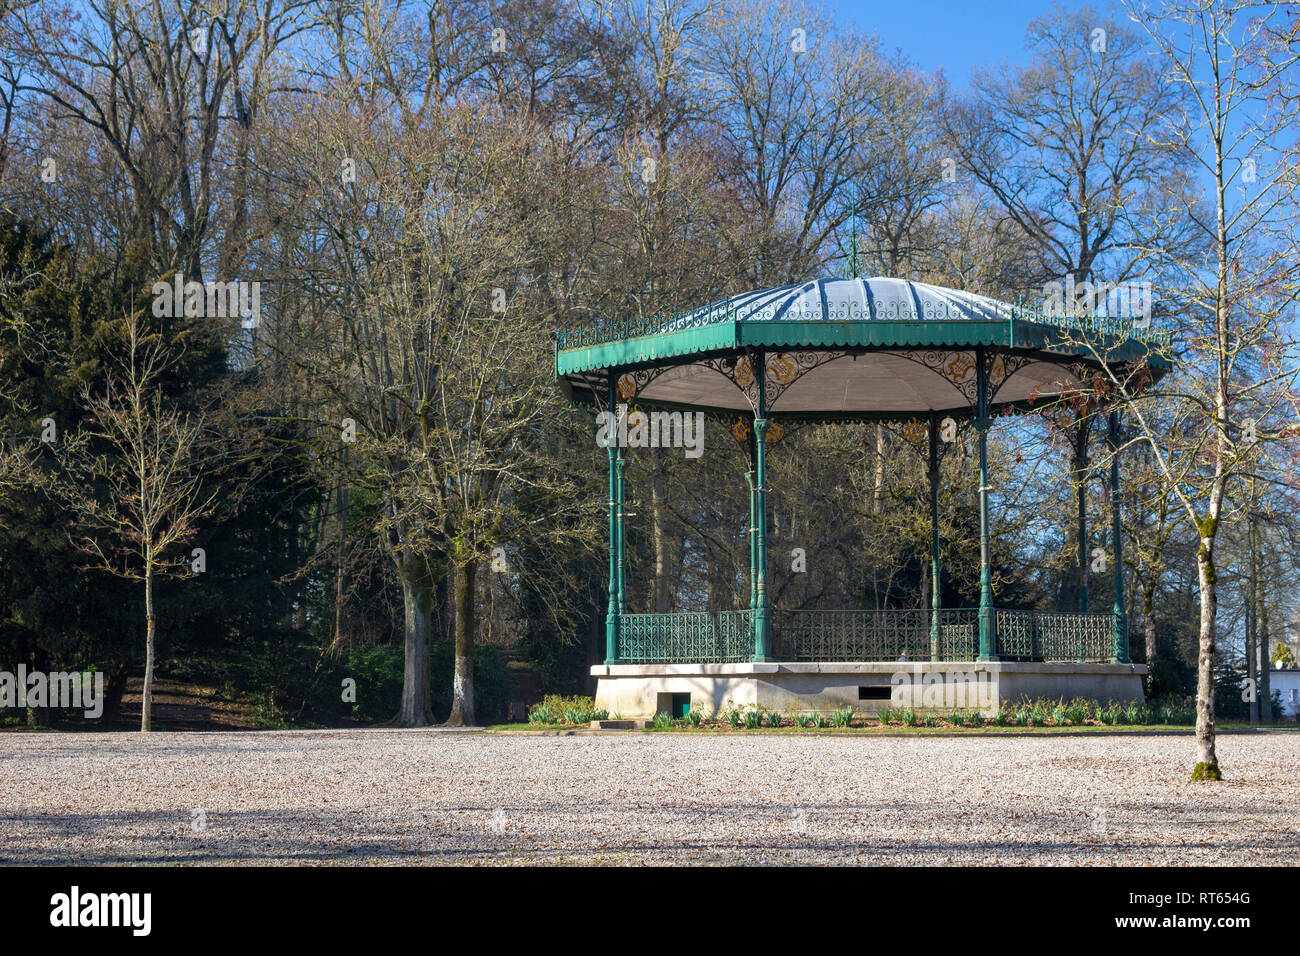 Bandstand in Public Gardens, Saint Omer, France - Stock Image